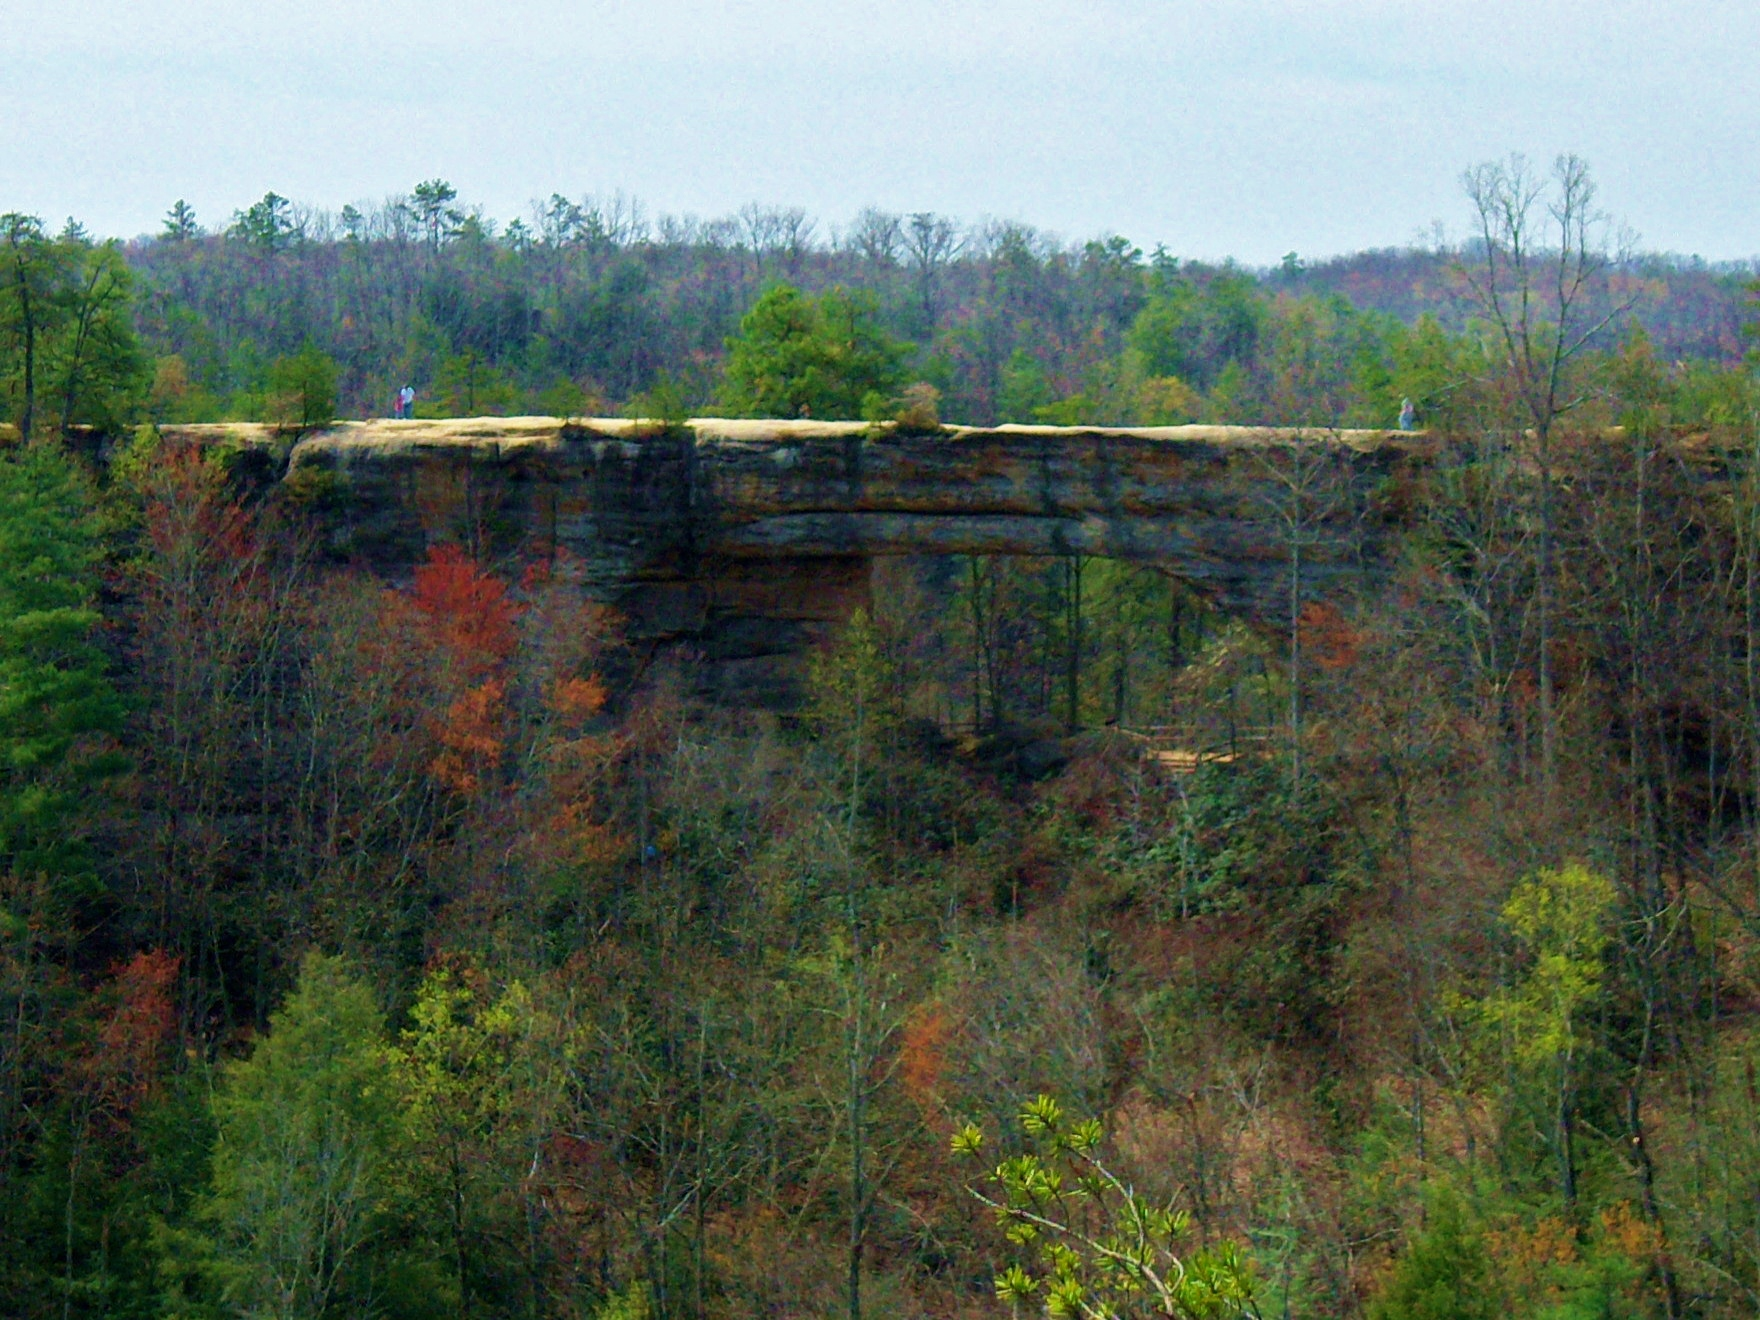 http://upload.wikimedia.org/wikipedia/commons/7/74/Natural_Bridge_%28Kentucky%29.jpg